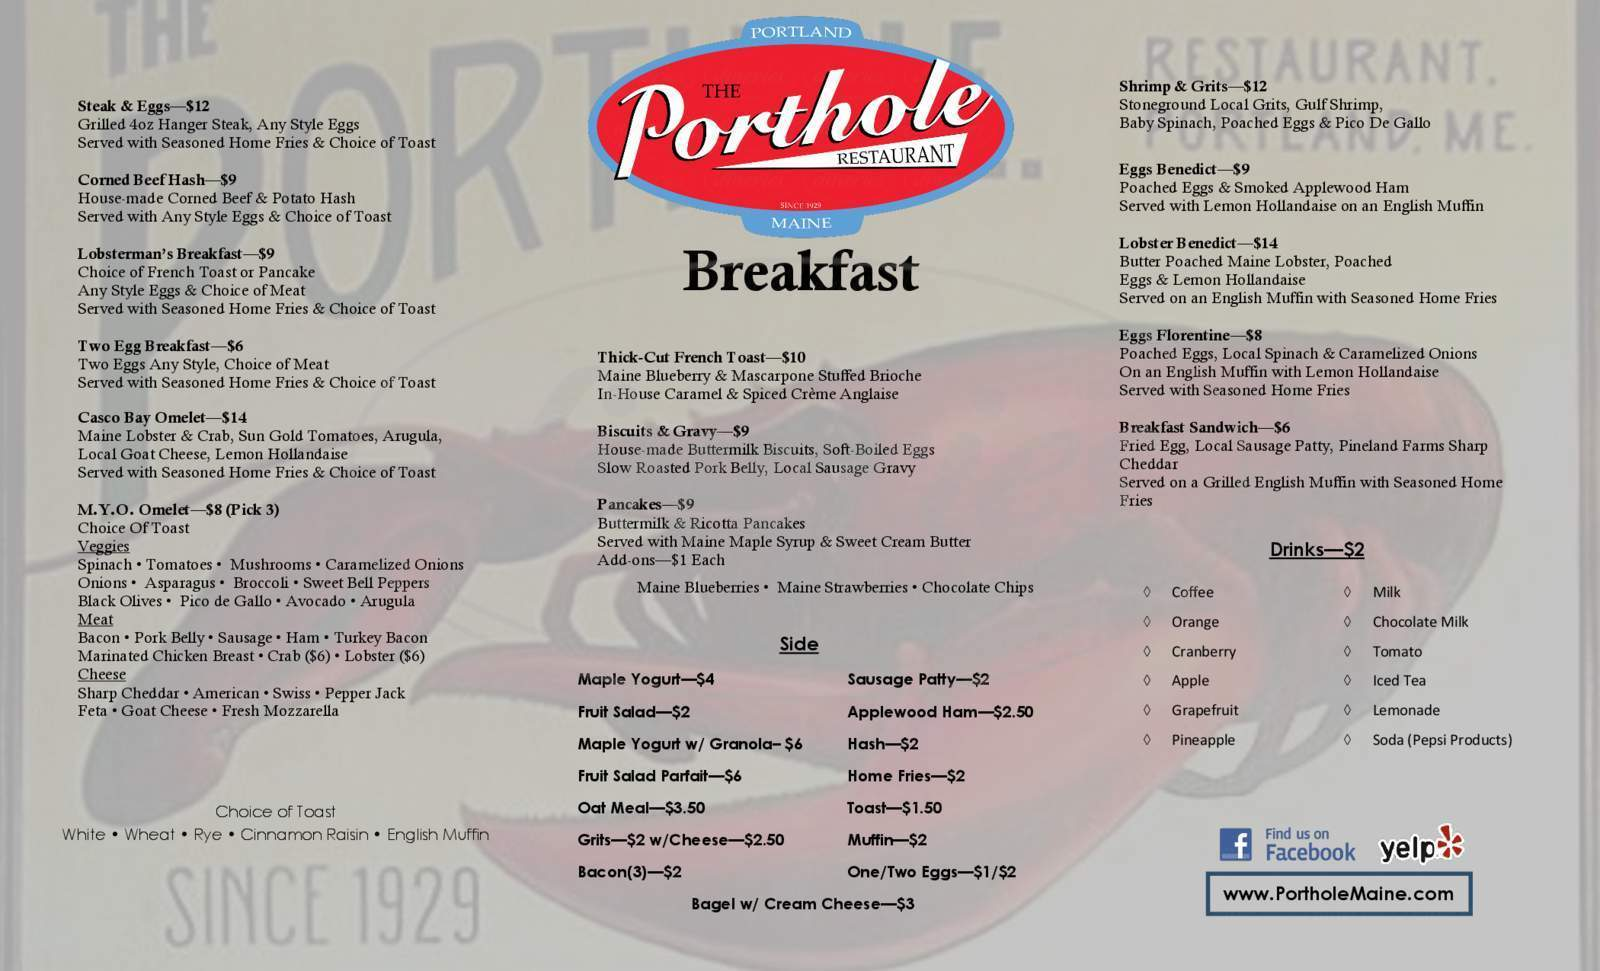 menu for The Porthole Restaurant & Pub